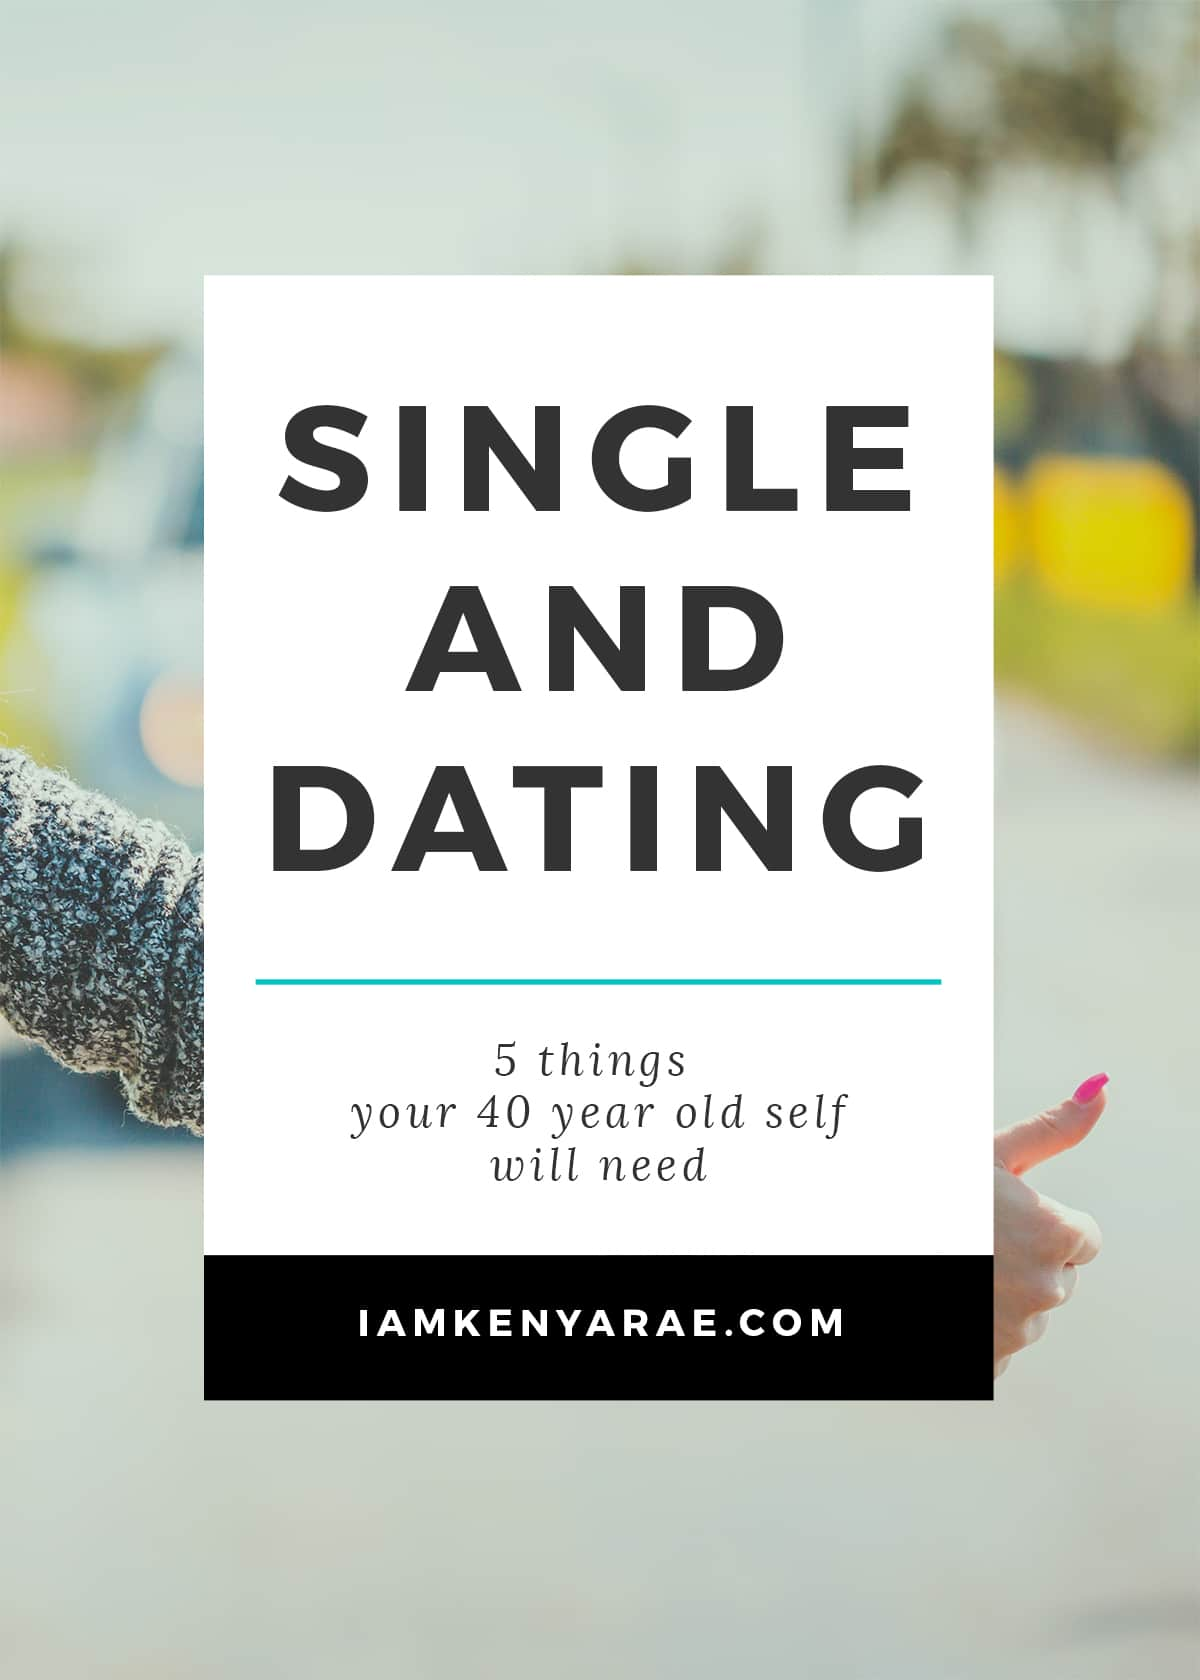 single-and-dating